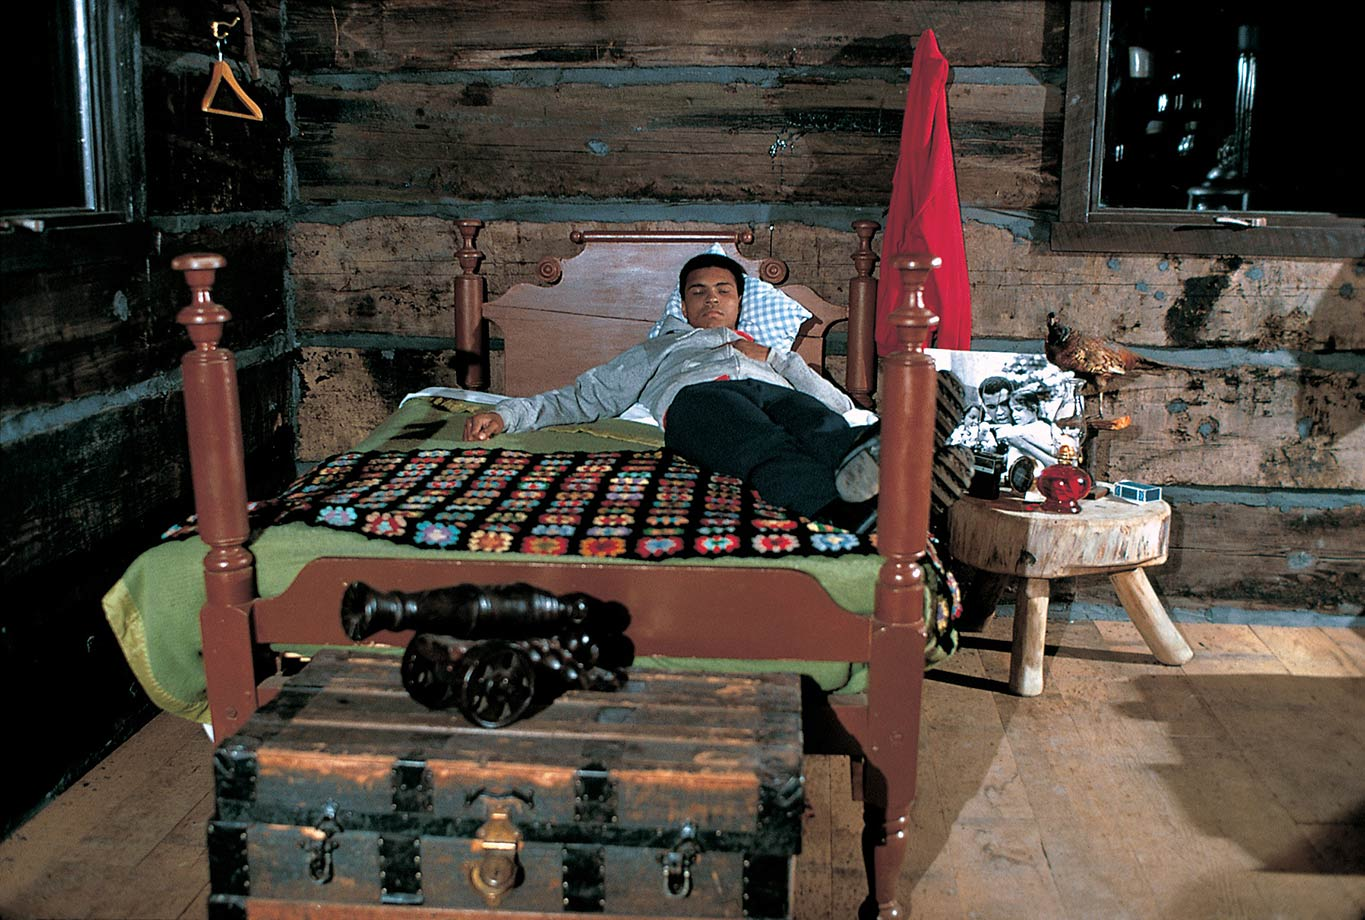 Ali lies on his bed at his cabin during the January 1974 photo shoot.